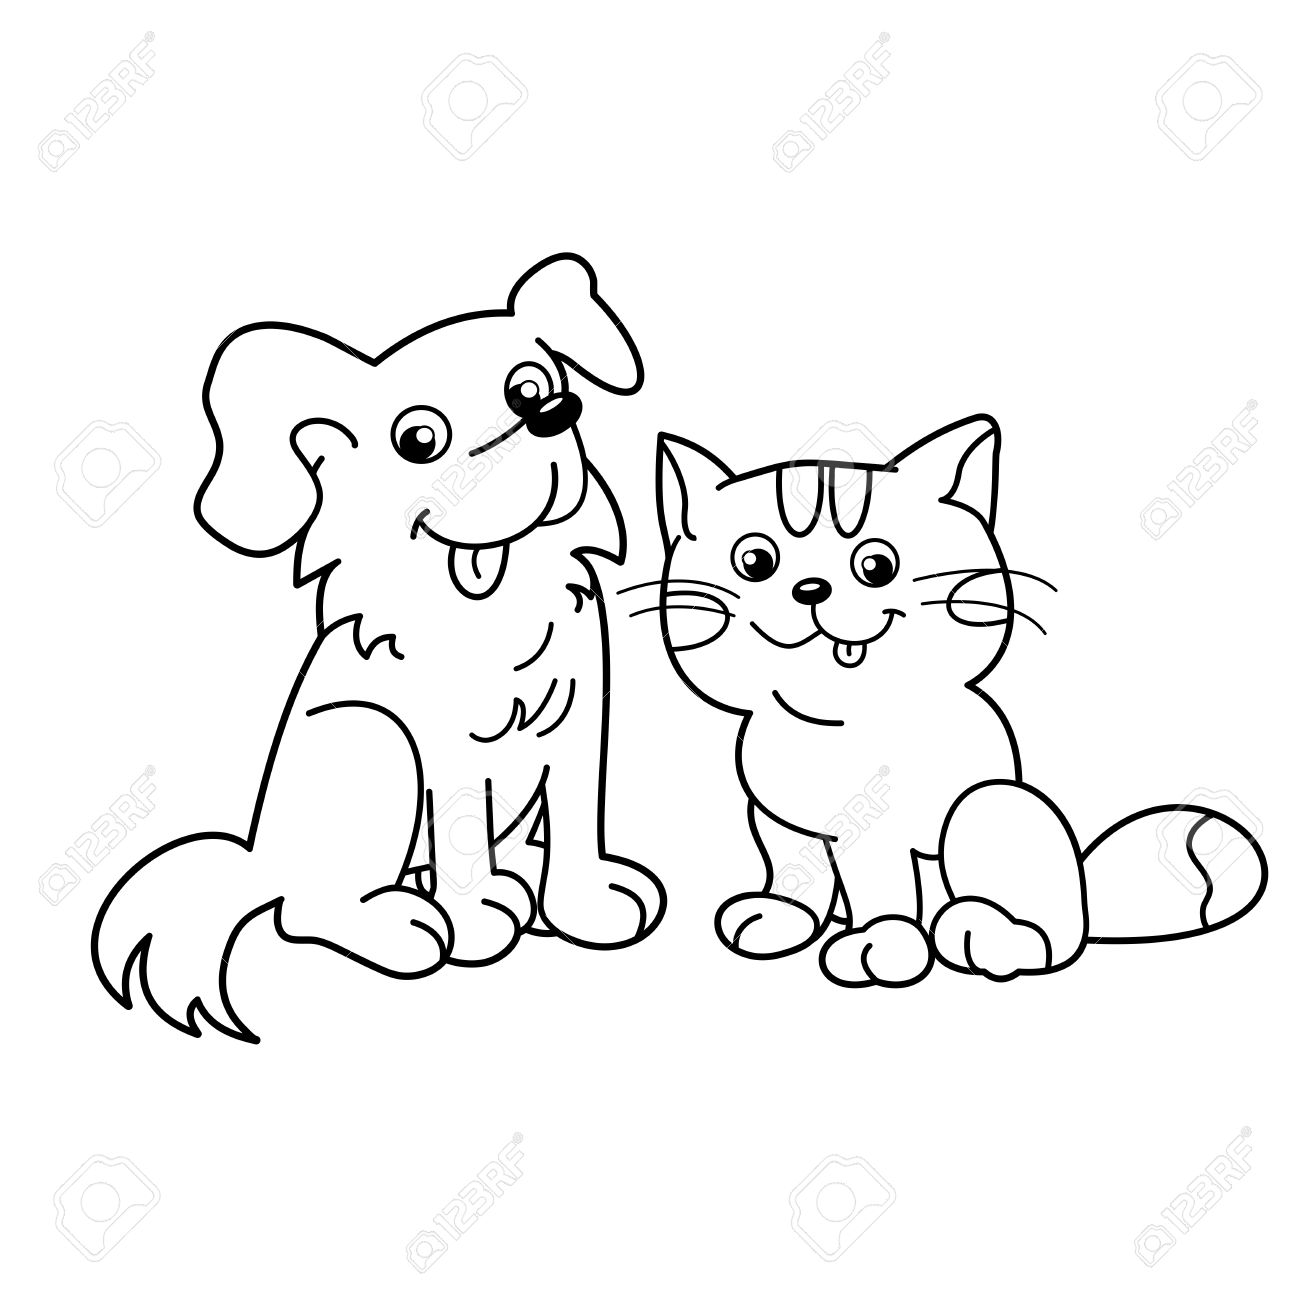 1300x1300 Coloring Page Outline Of Cartoon Cat With Dog Pets